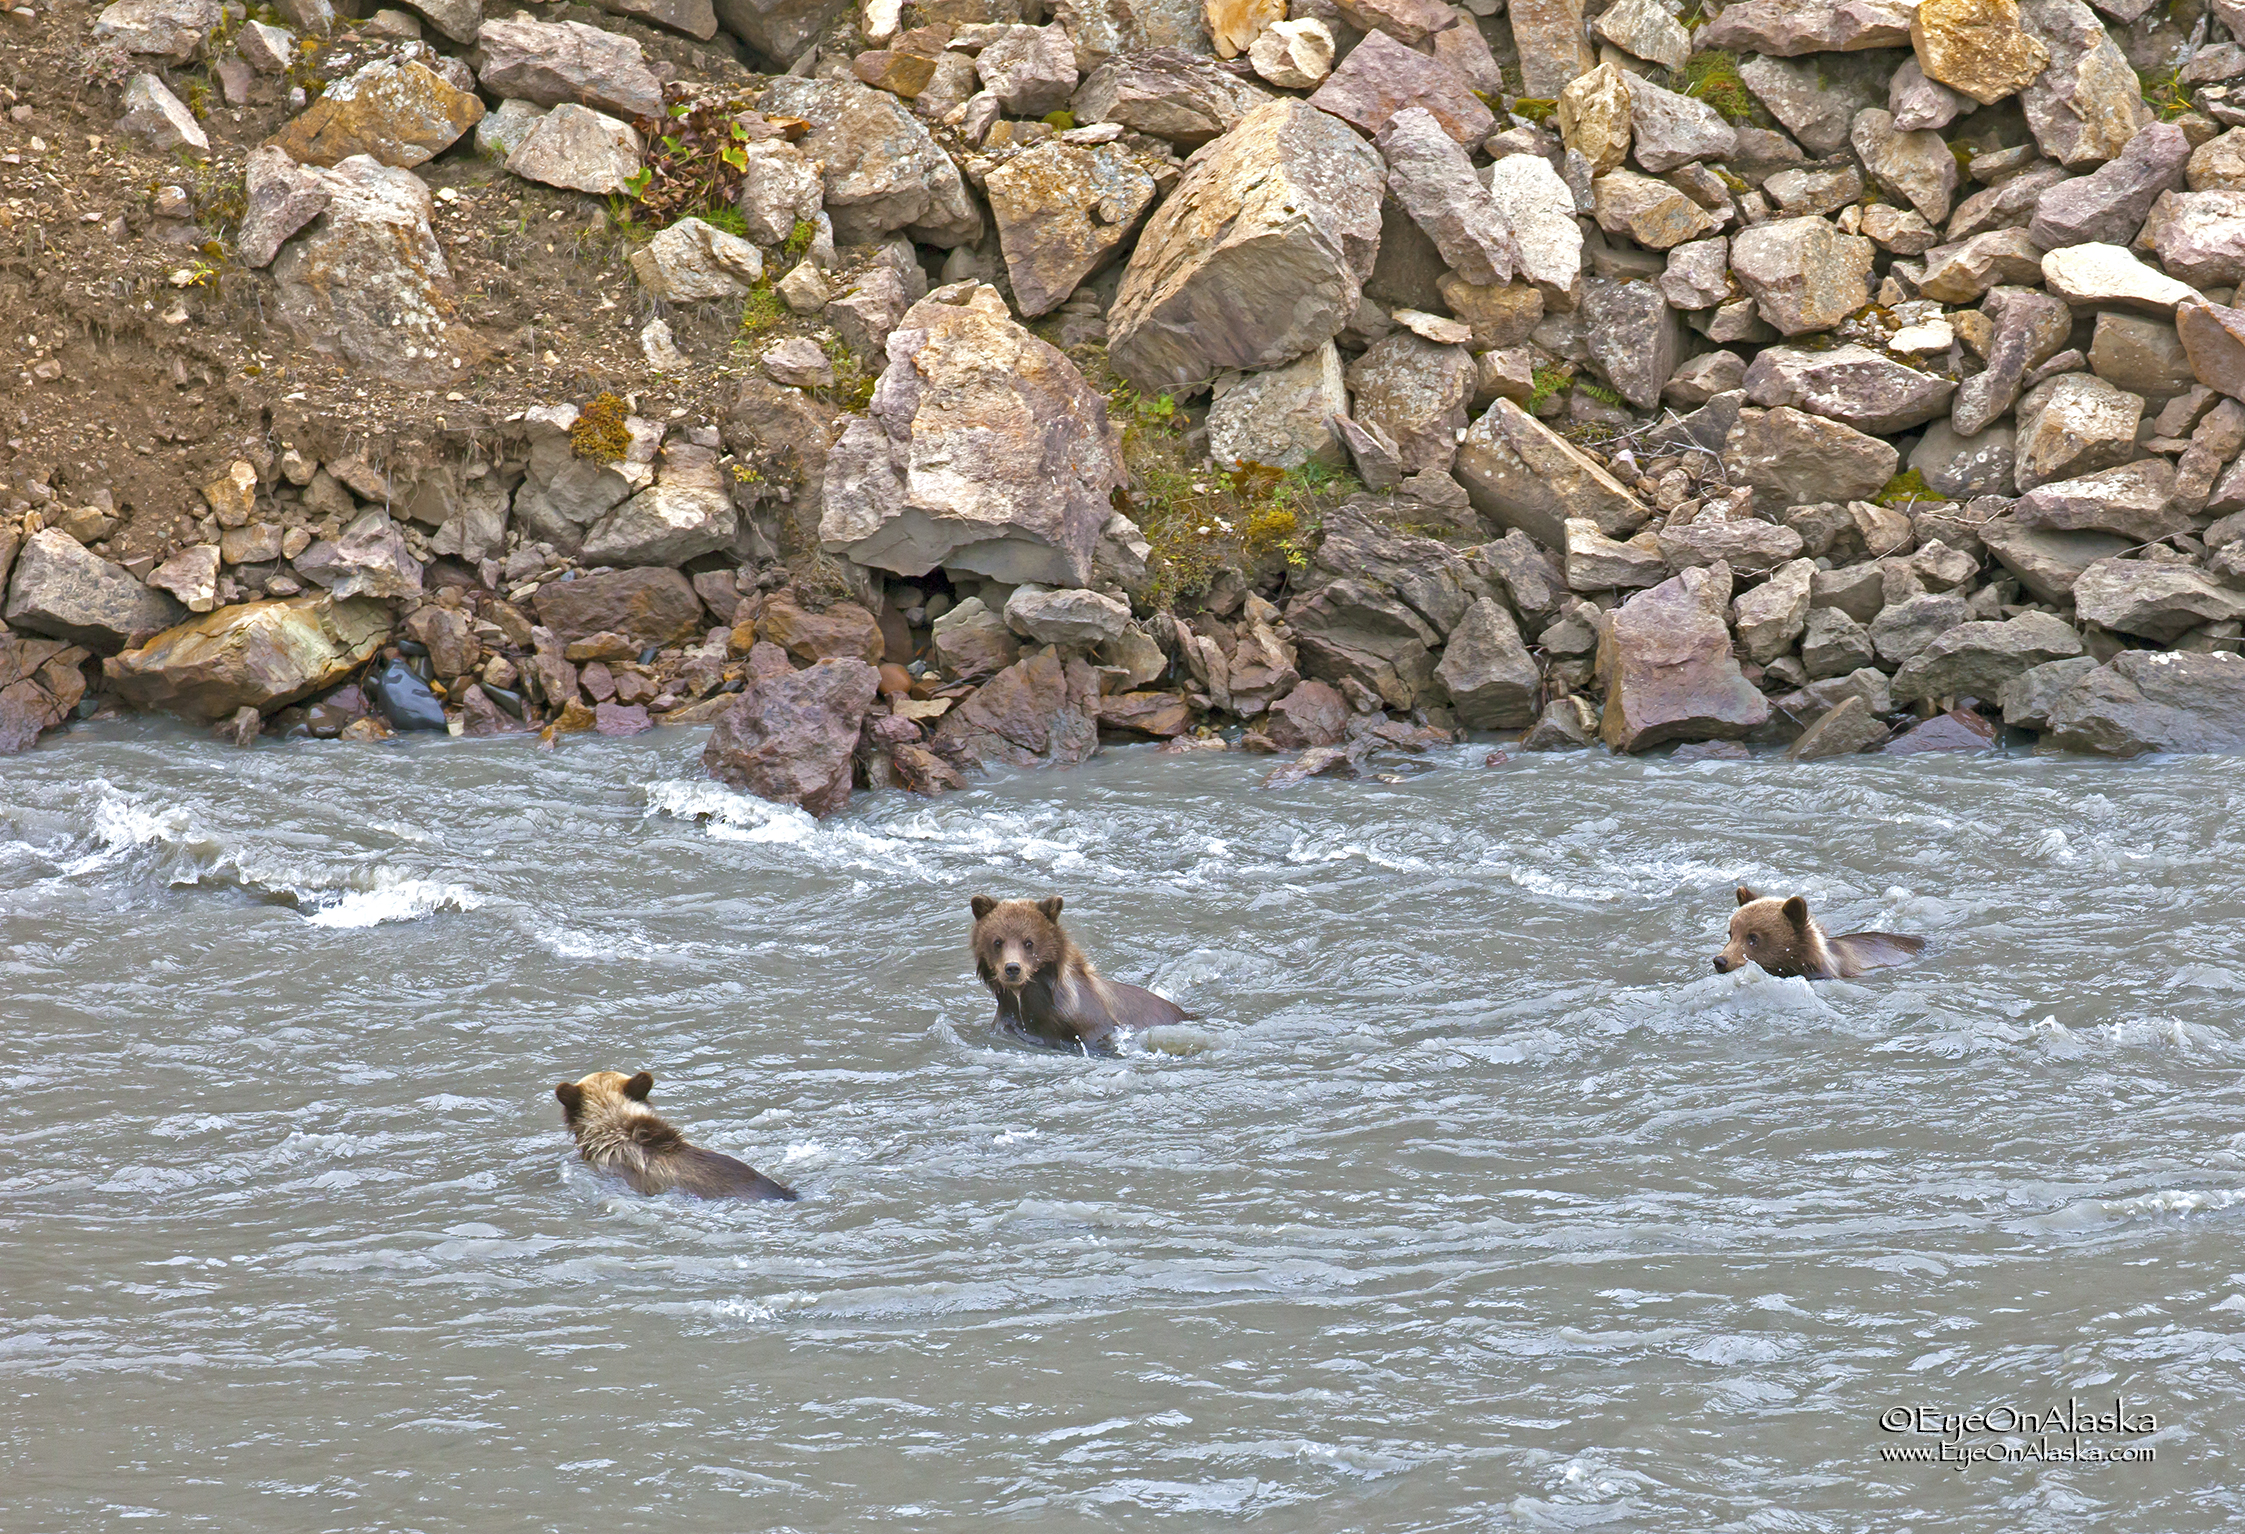 The other two have to get in the act, so all three cubs are now headed downstream in the swift current.